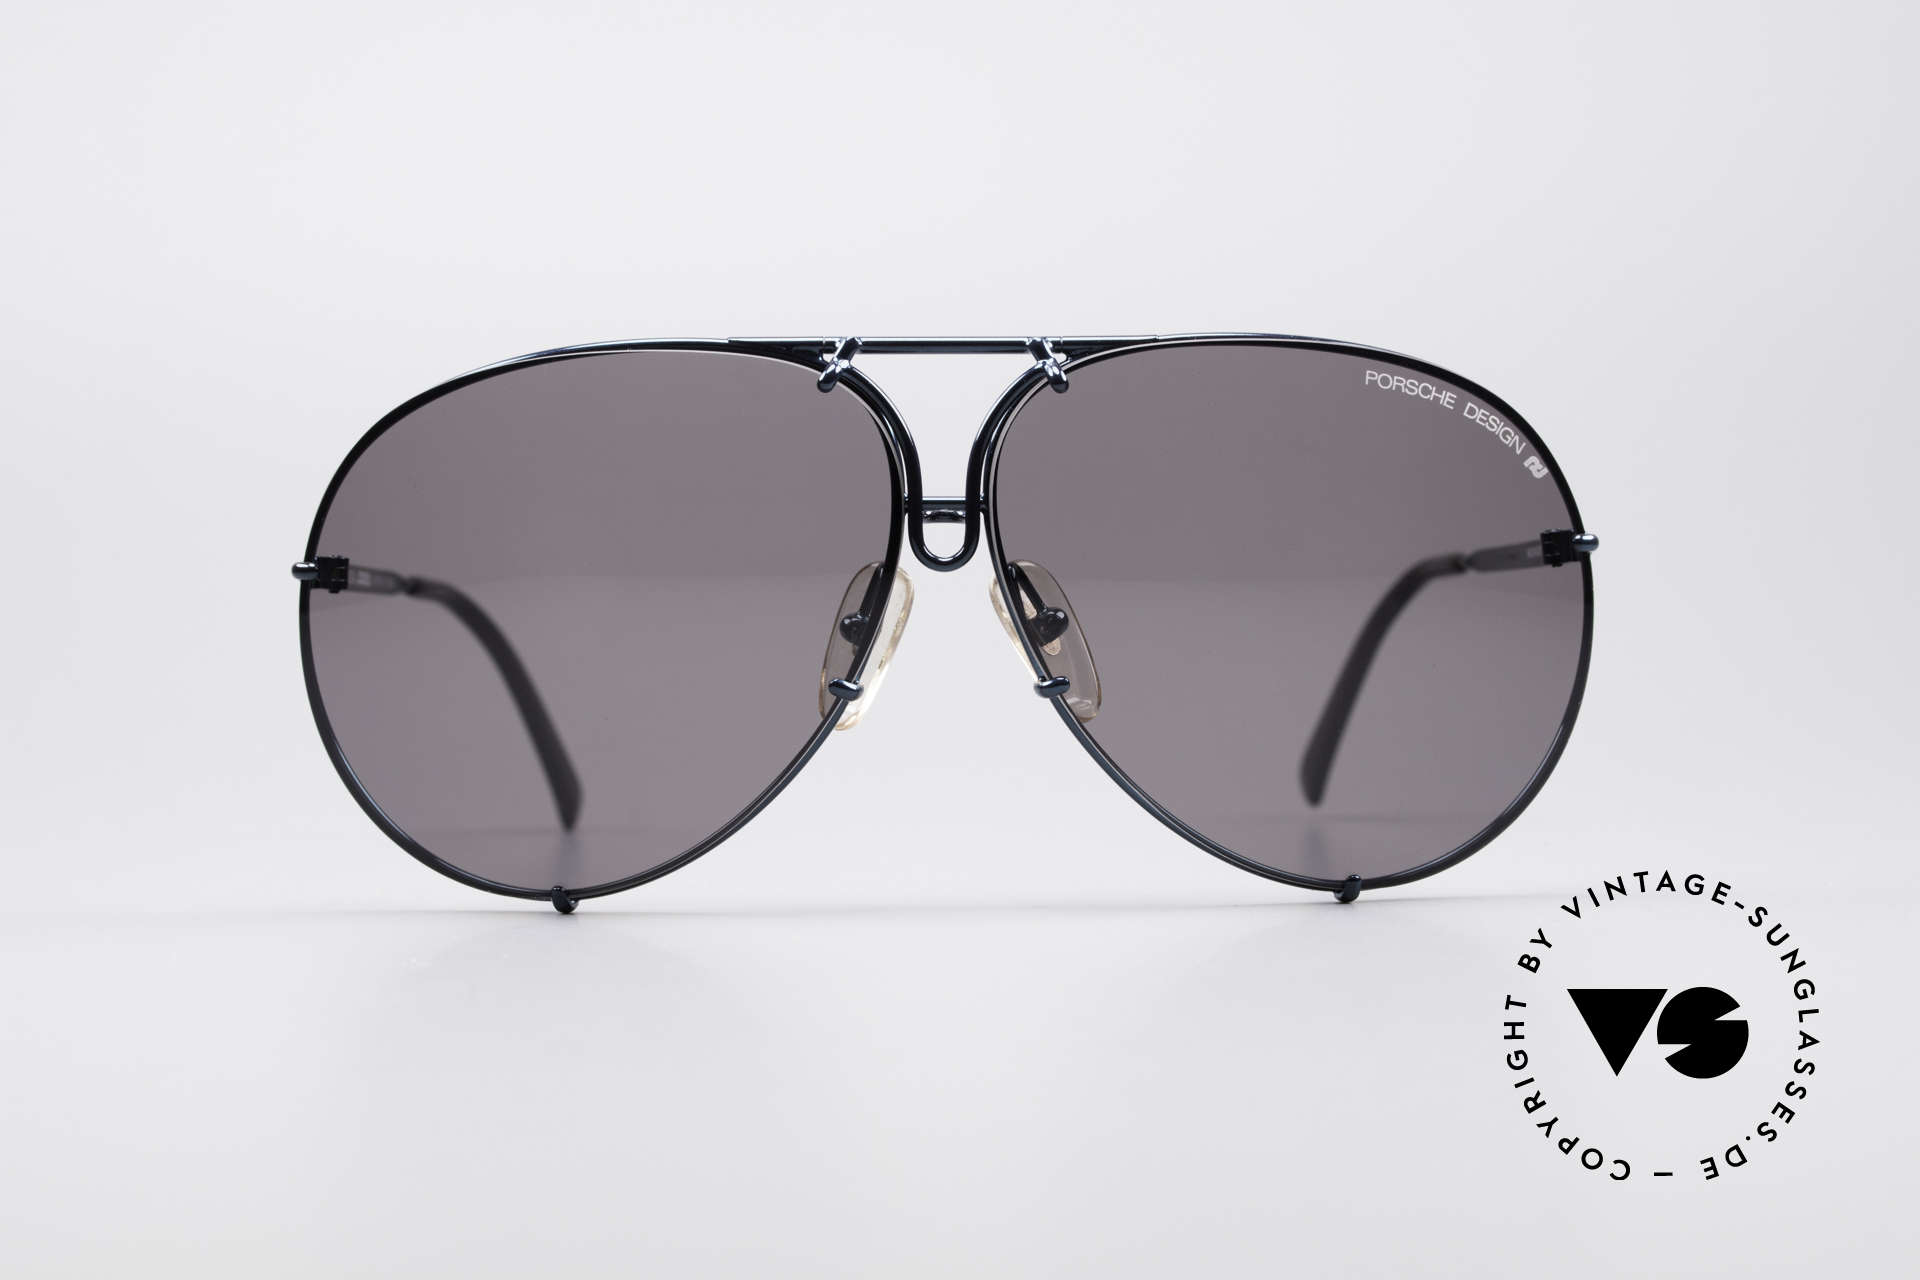 Porsche 5623 Rare 80's Aviator Sunglasses, unworn rarity incl. orig. Porsche case; collector's item, Made for Men and Women